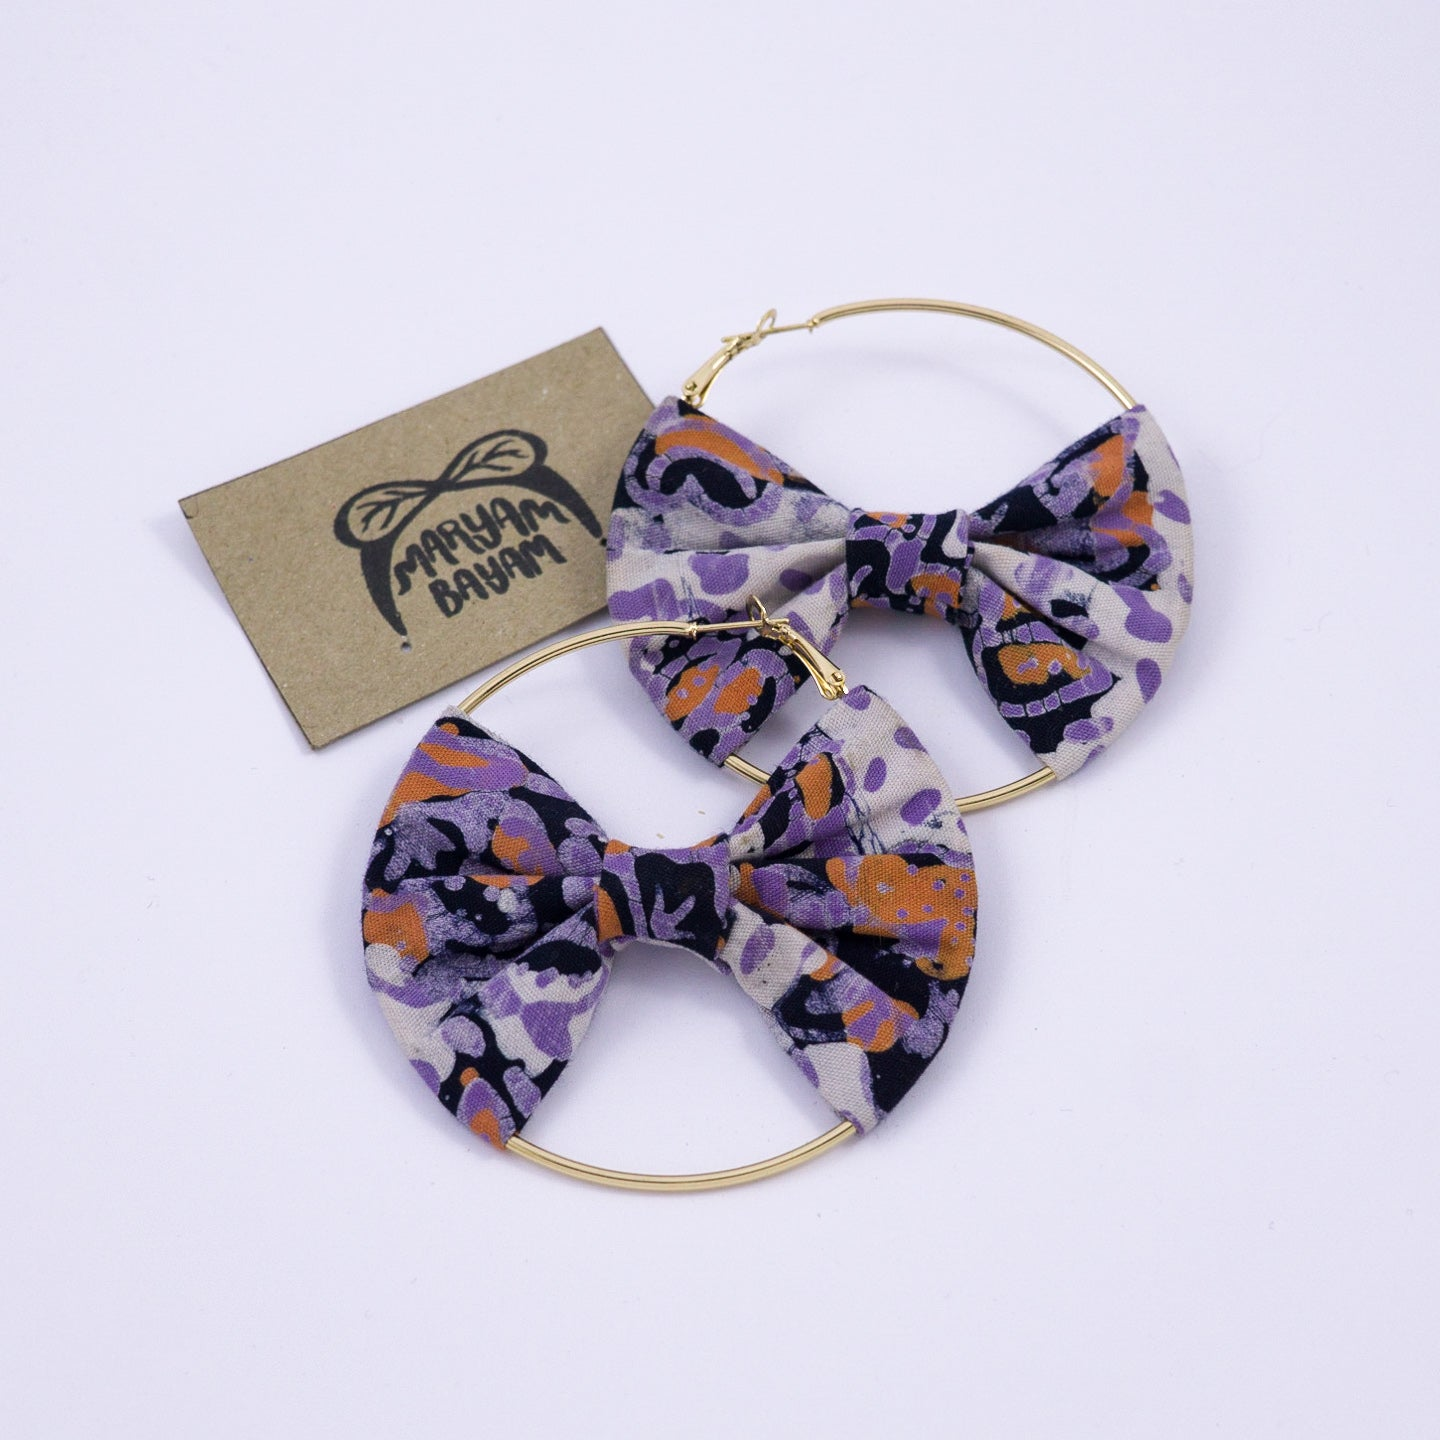 GAIA Batik Bow Hoops - MaryamBayam – Better in Batik